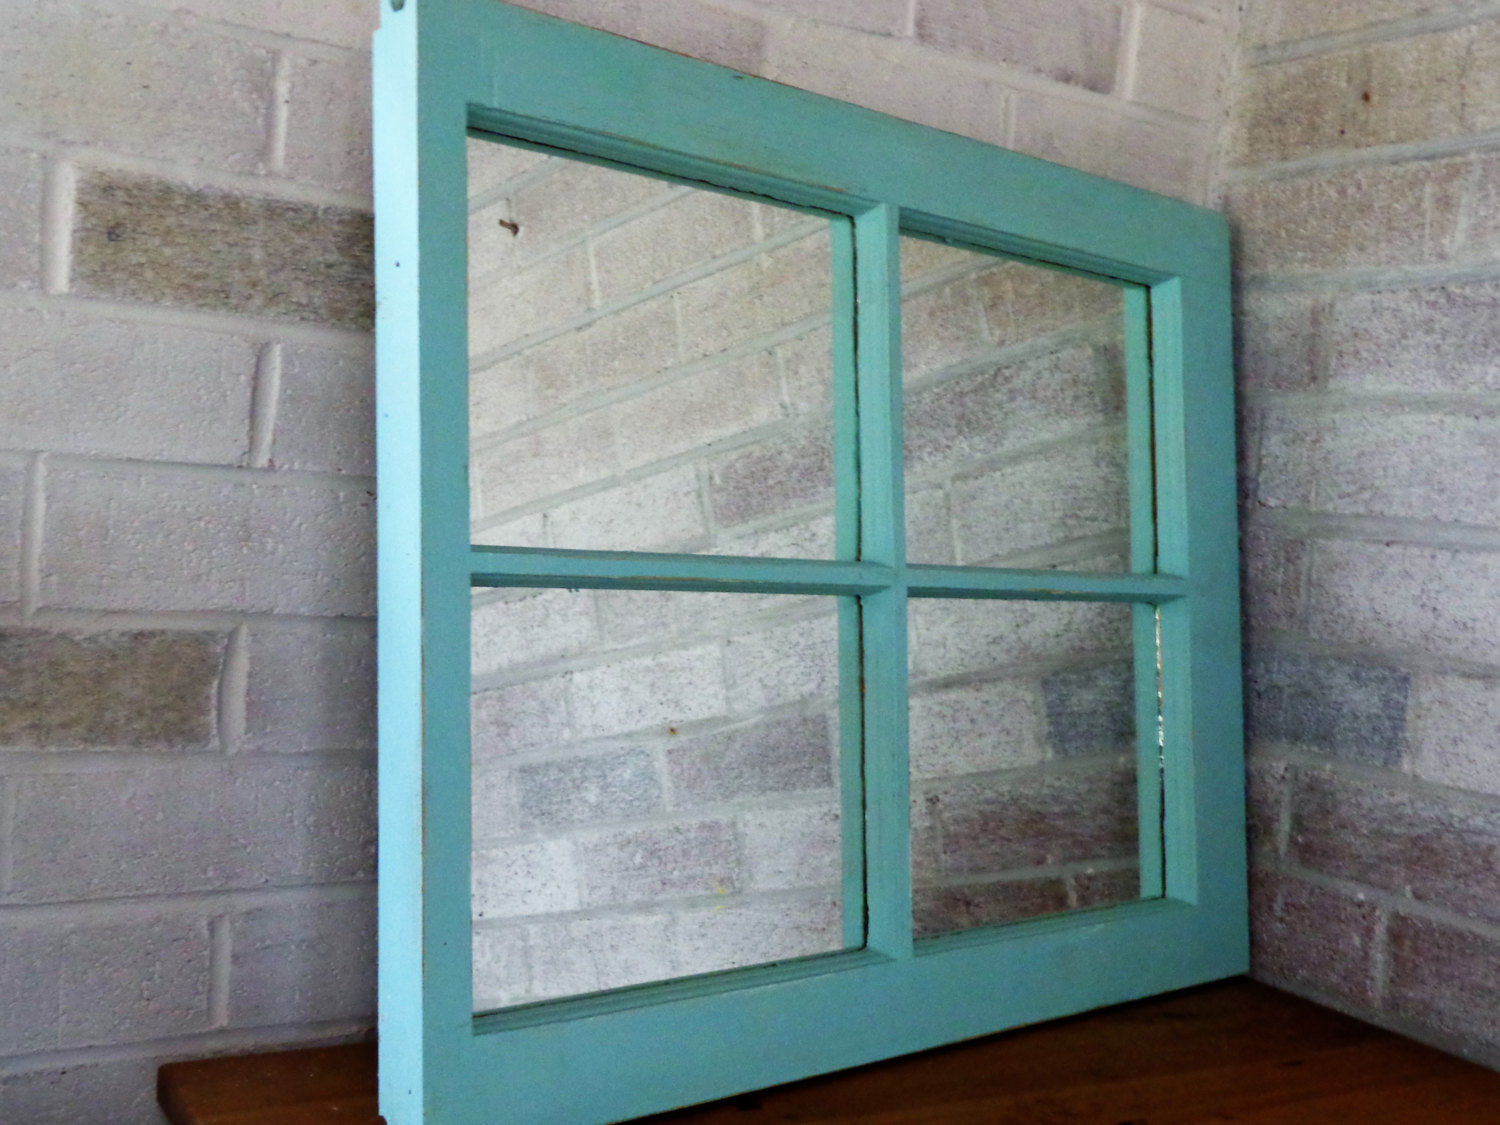 Mirror Wall Decor, Reclaimed Wood Window Mirror – 4 Pane Frame – Decorative Mirror – Vintage Mirror – Wall Decor - Renewed Decor & Storage